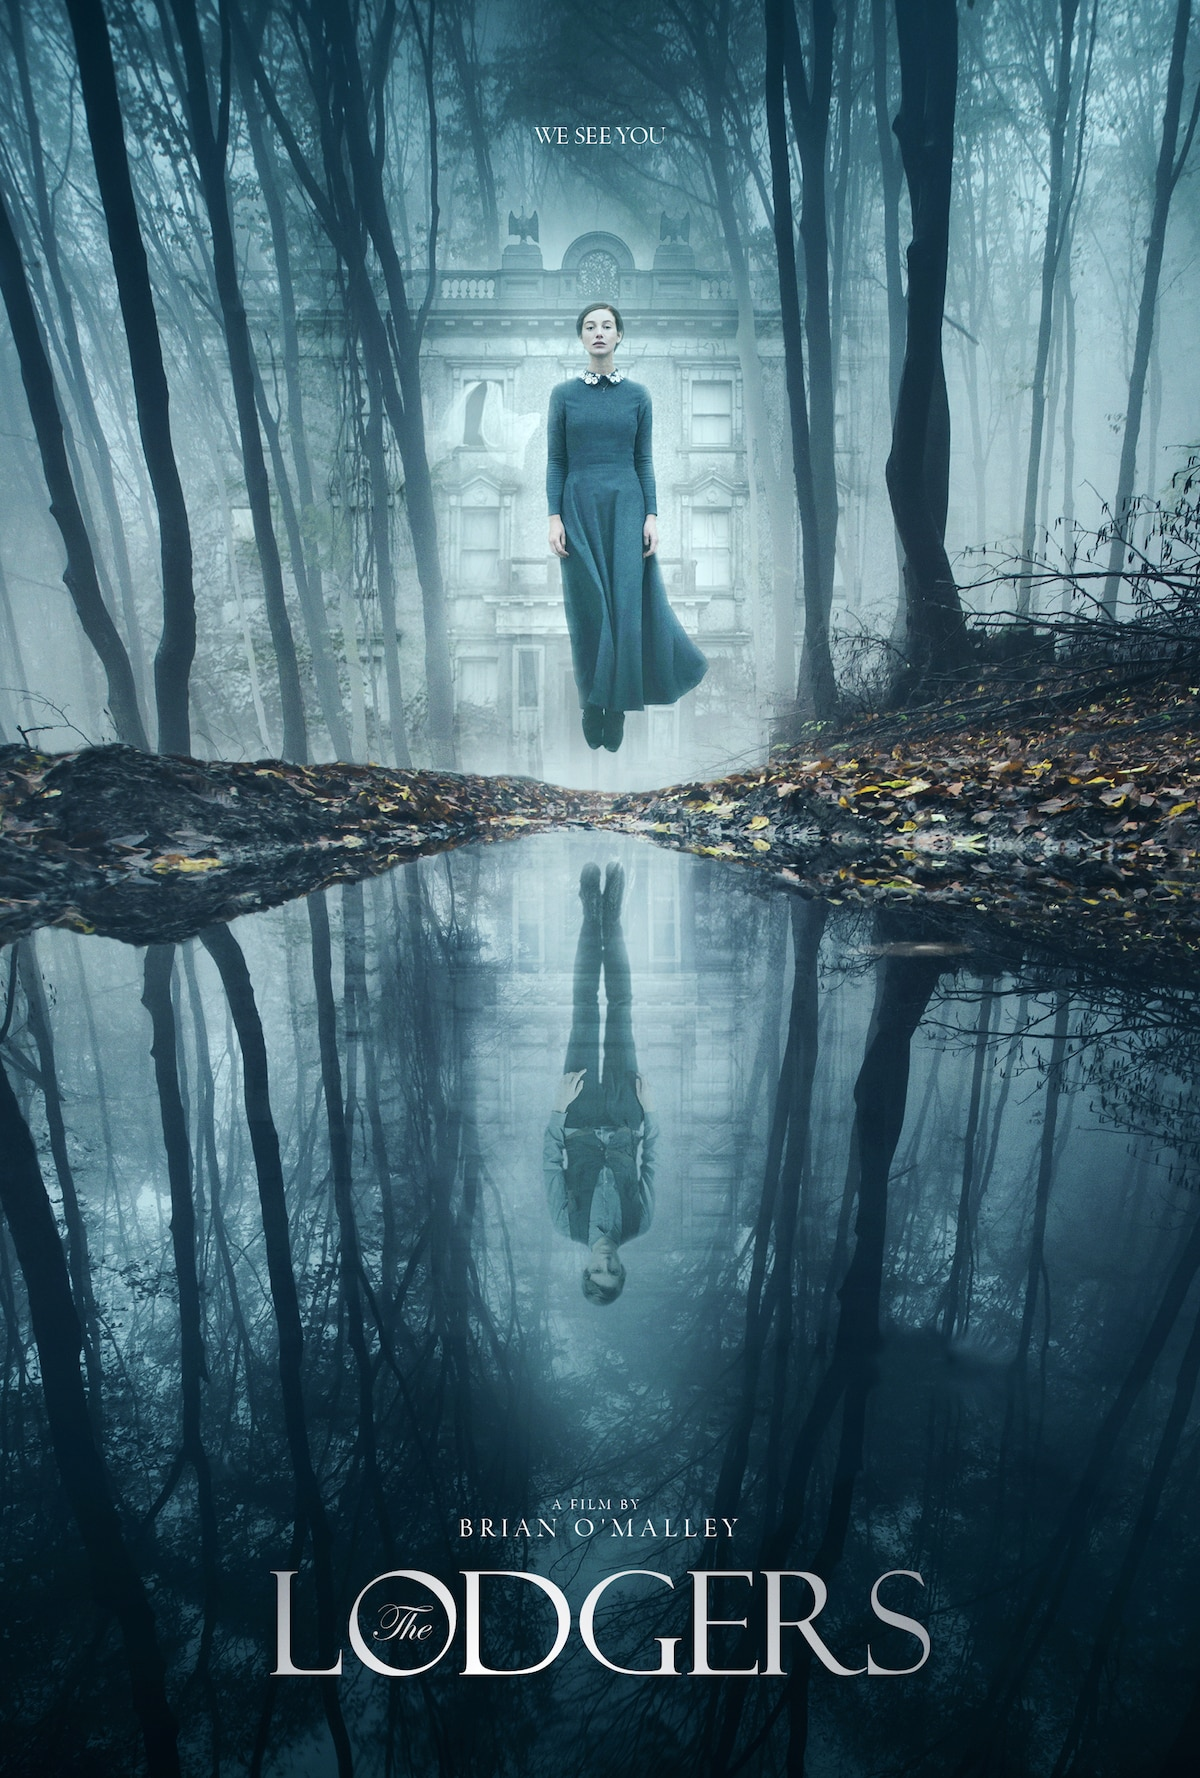 THE LODGERS FINISH KEY ART - Dread Central Presents The Lodgers - Vegas Screening and Wider Release